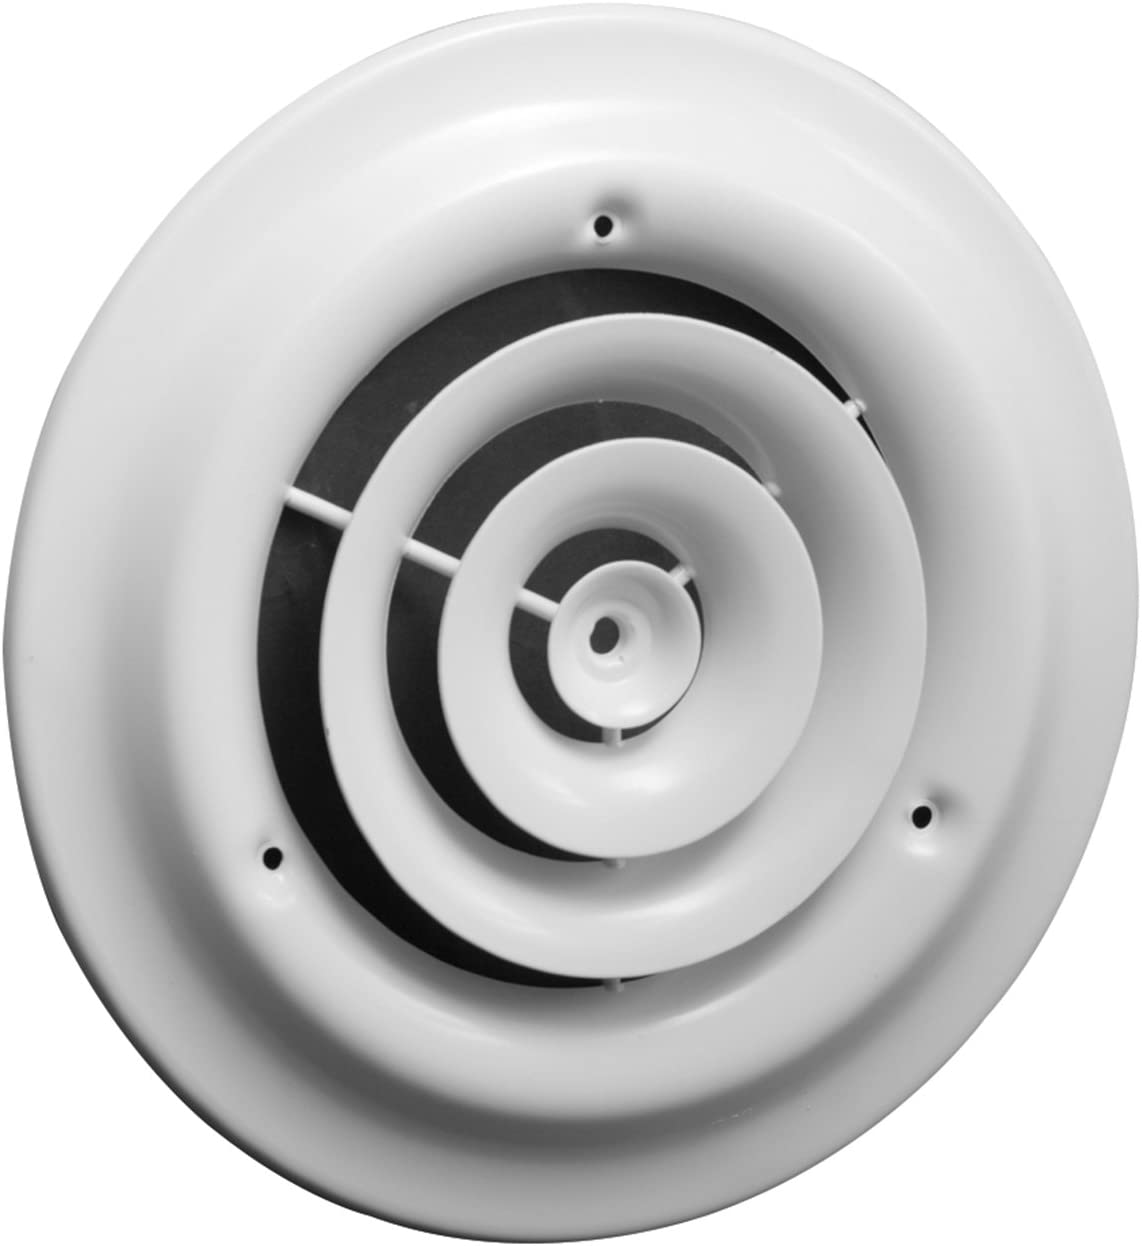 "10"" Round Ceiling Diffuser - Easy Air Flow - HVAC Duct [White] [Outer Dimensions: 14""]"